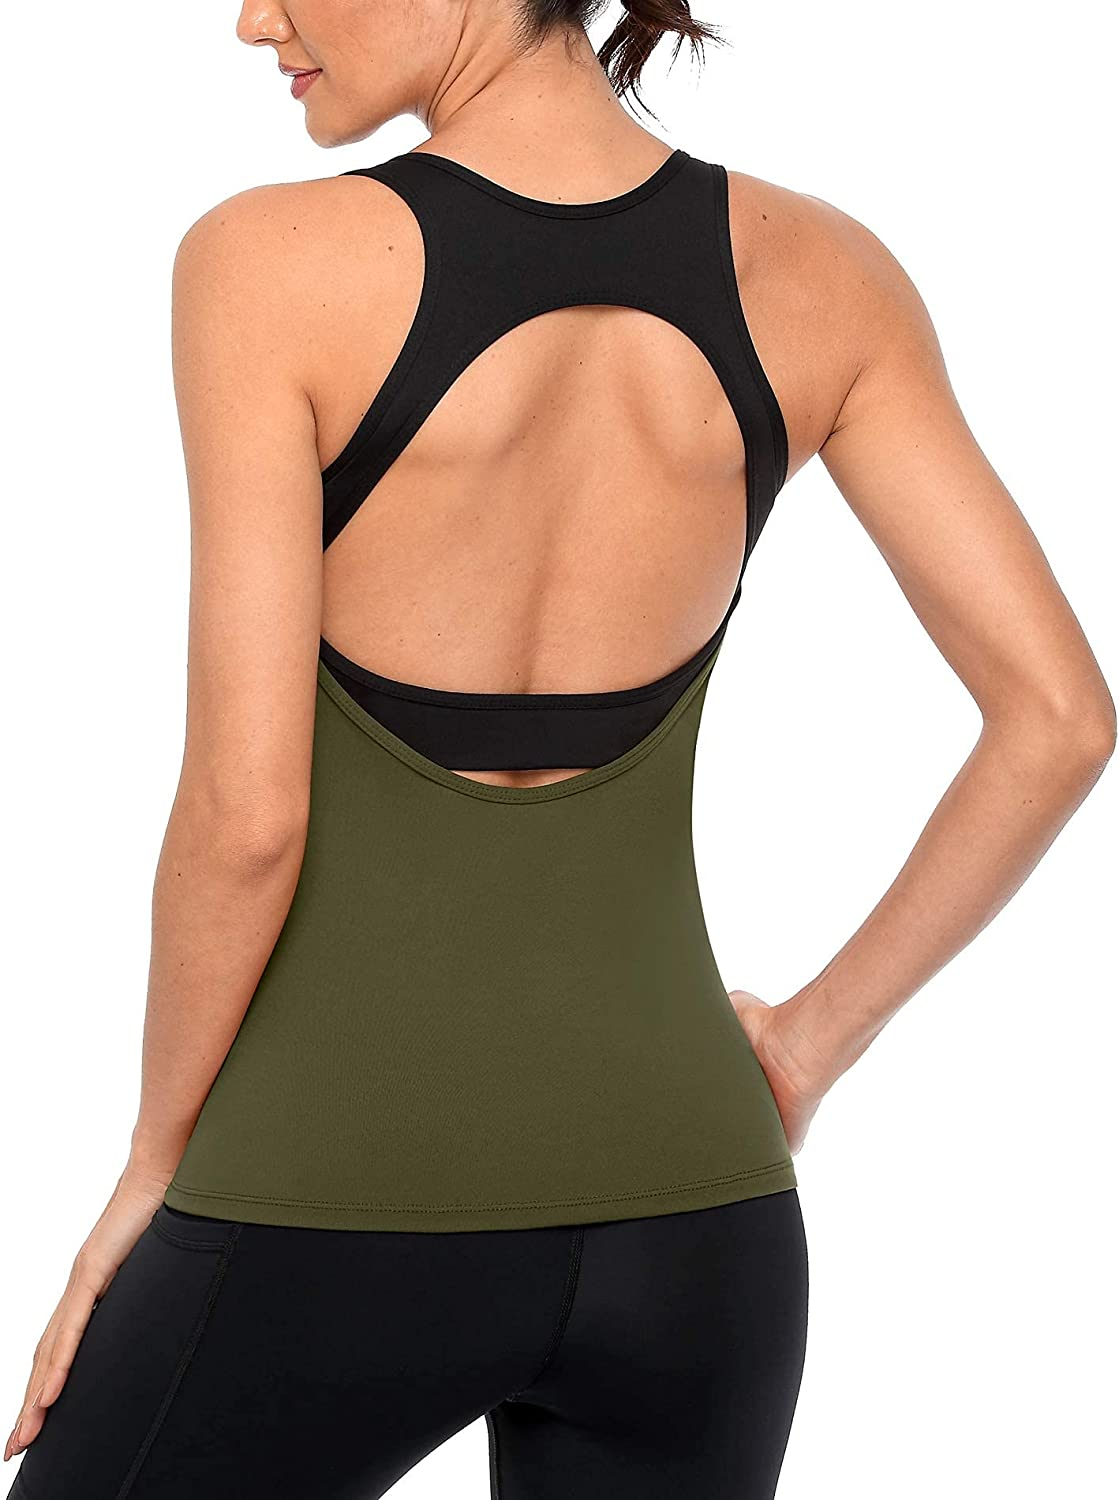 ATTRACO Open Back Workout Portland Mall Tank Max 42% OFF Top with in A for Women Bra Built